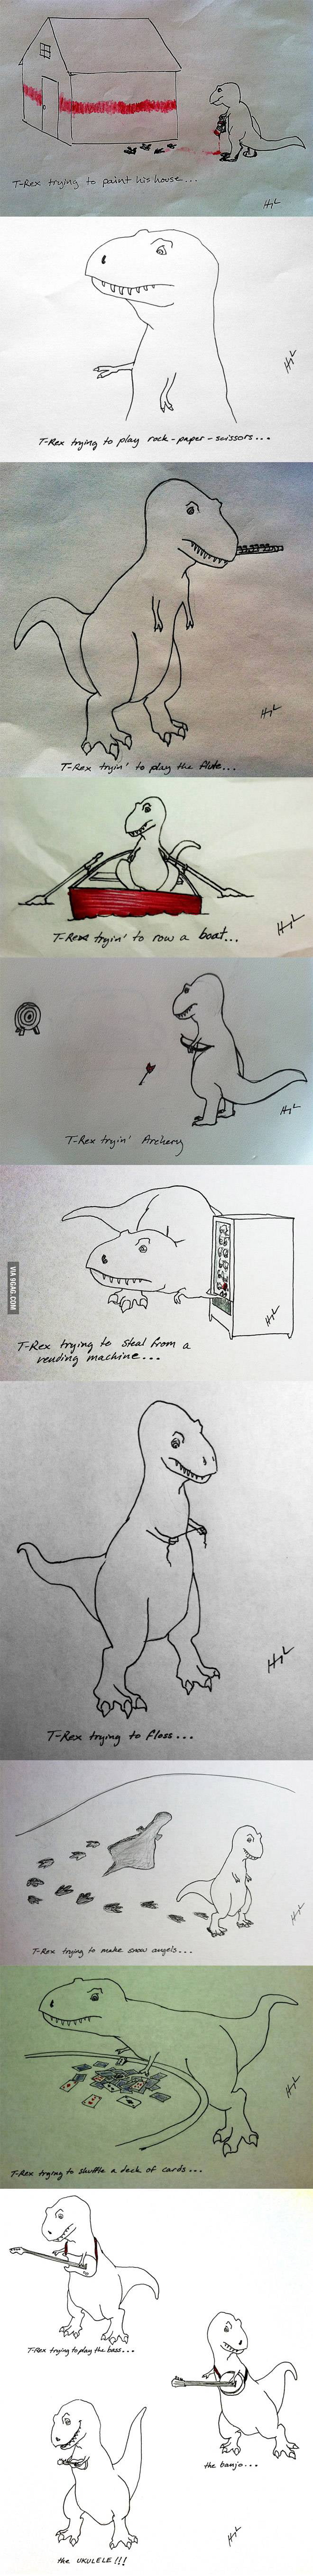 T-Rex trying to do stuff...